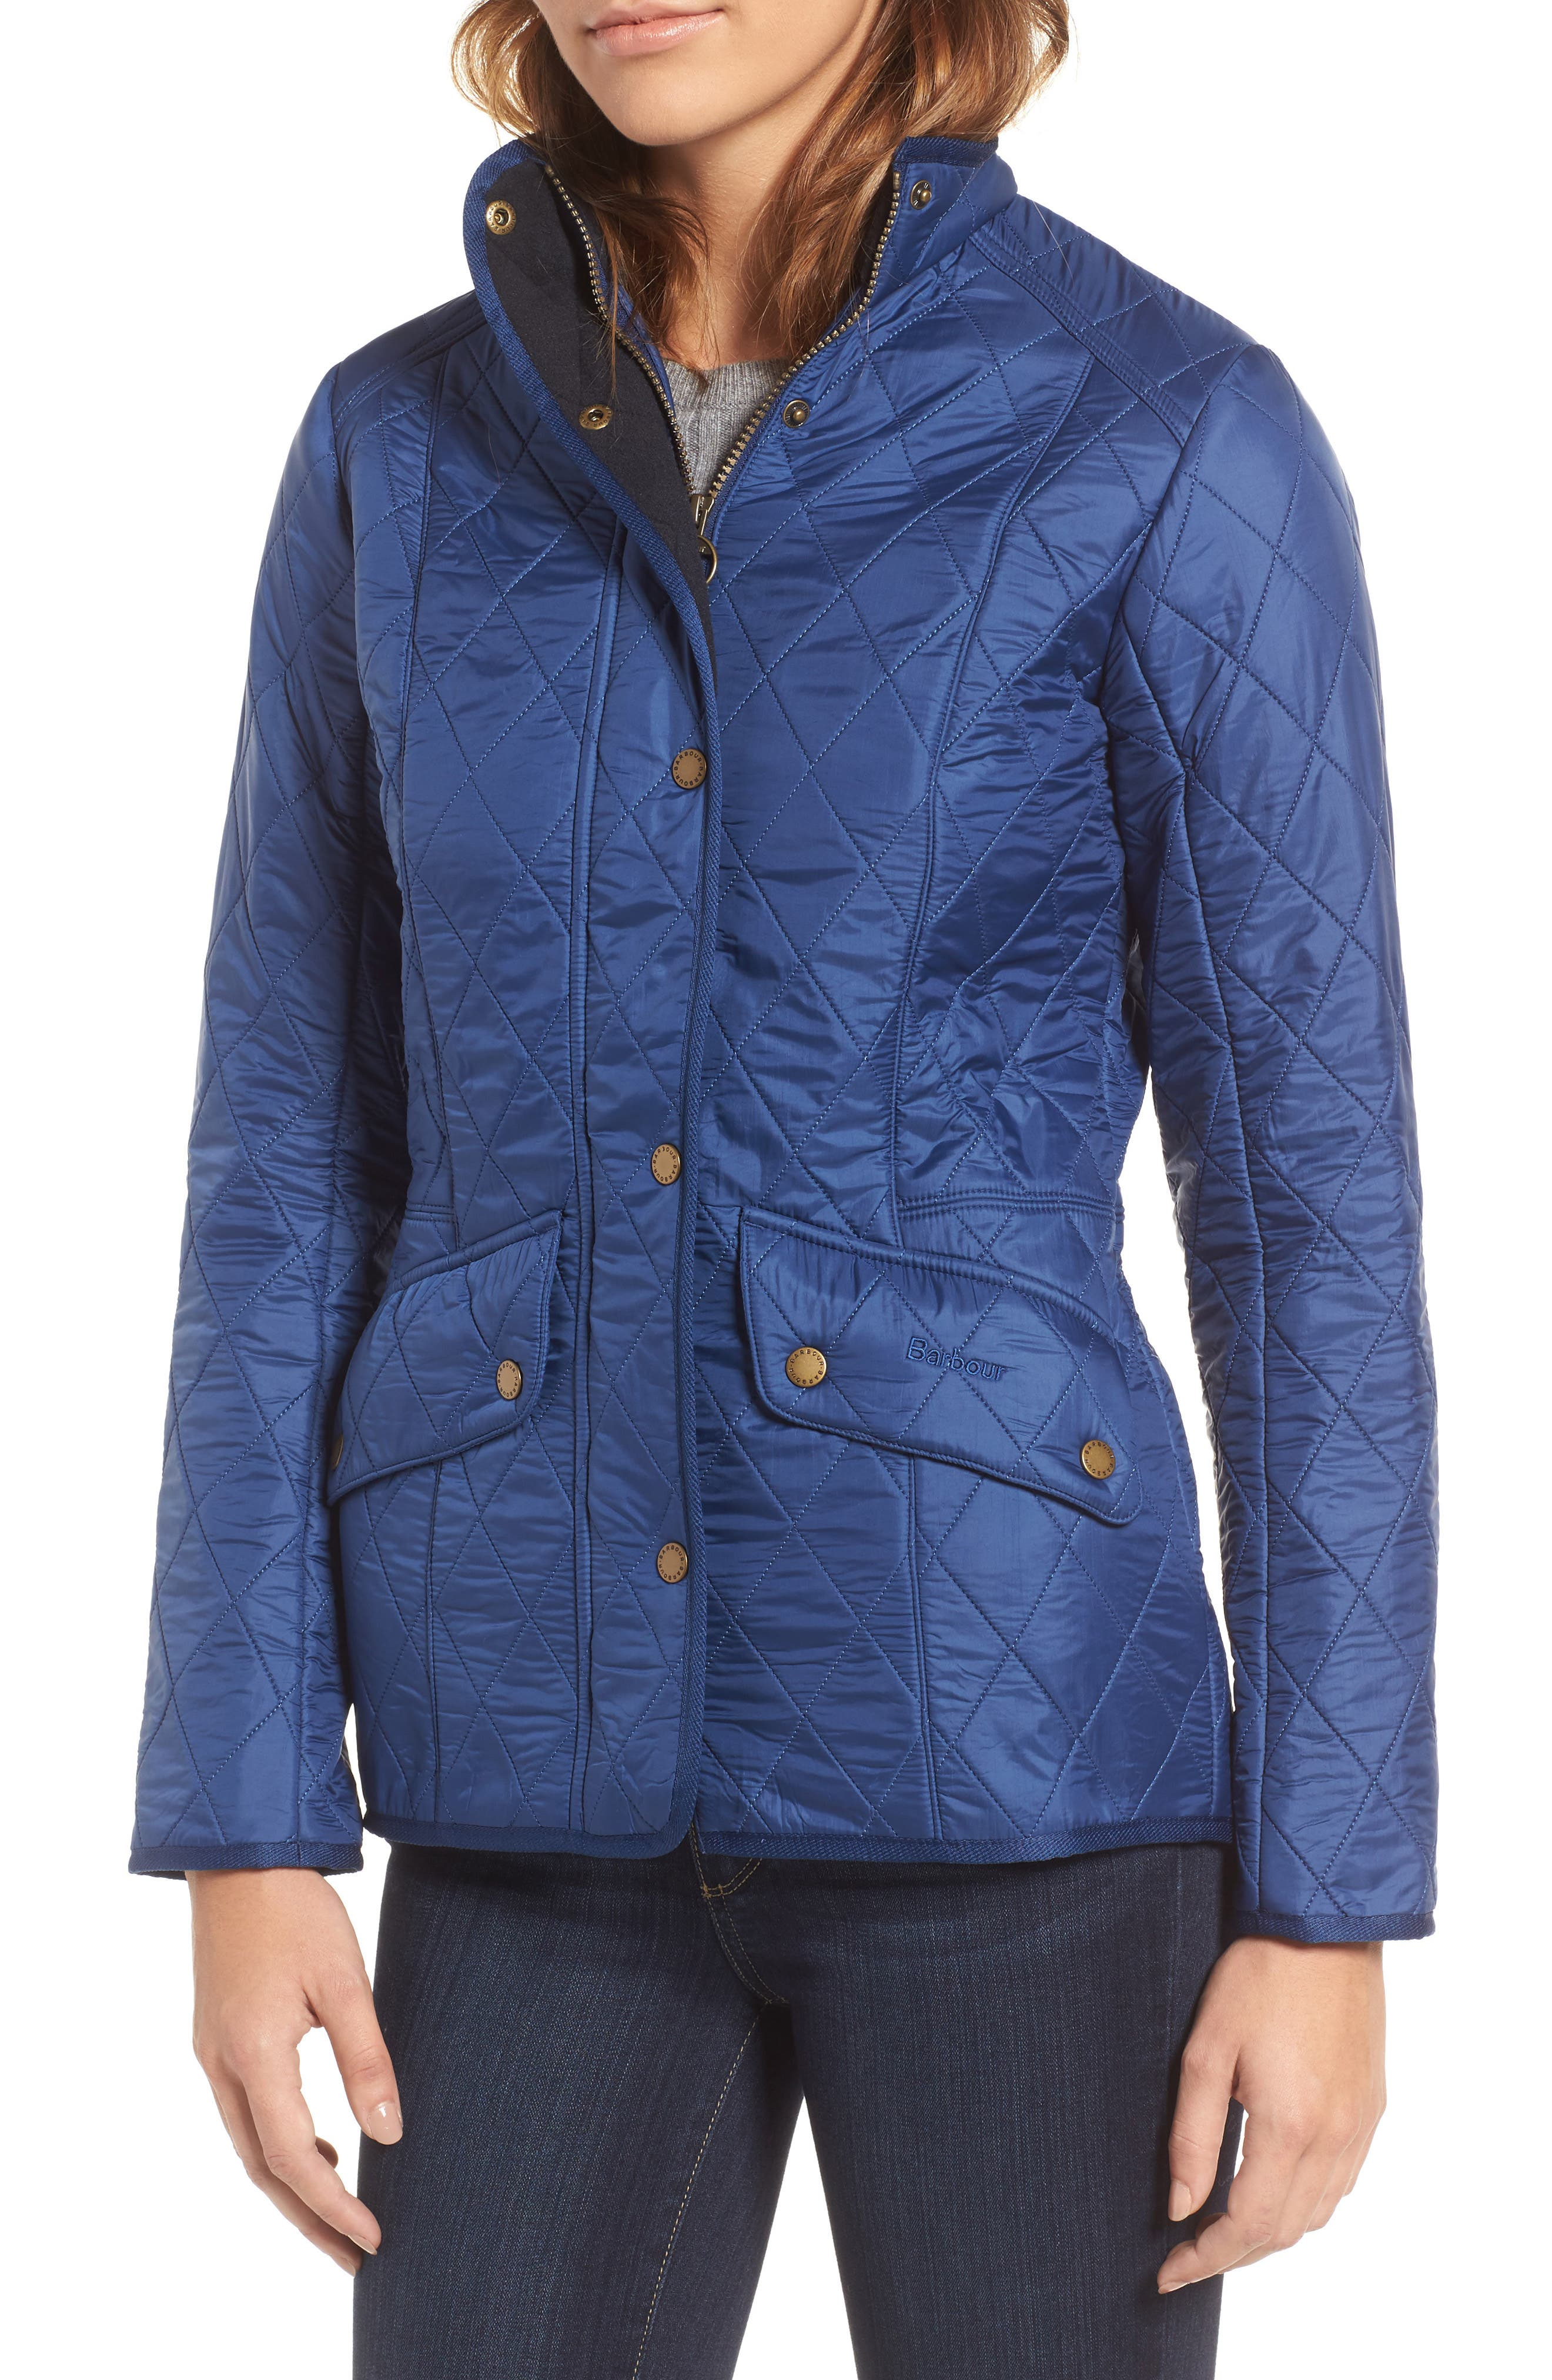 'Cavalry' Quilted Jacket,                             Alternate thumbnail 45, color,